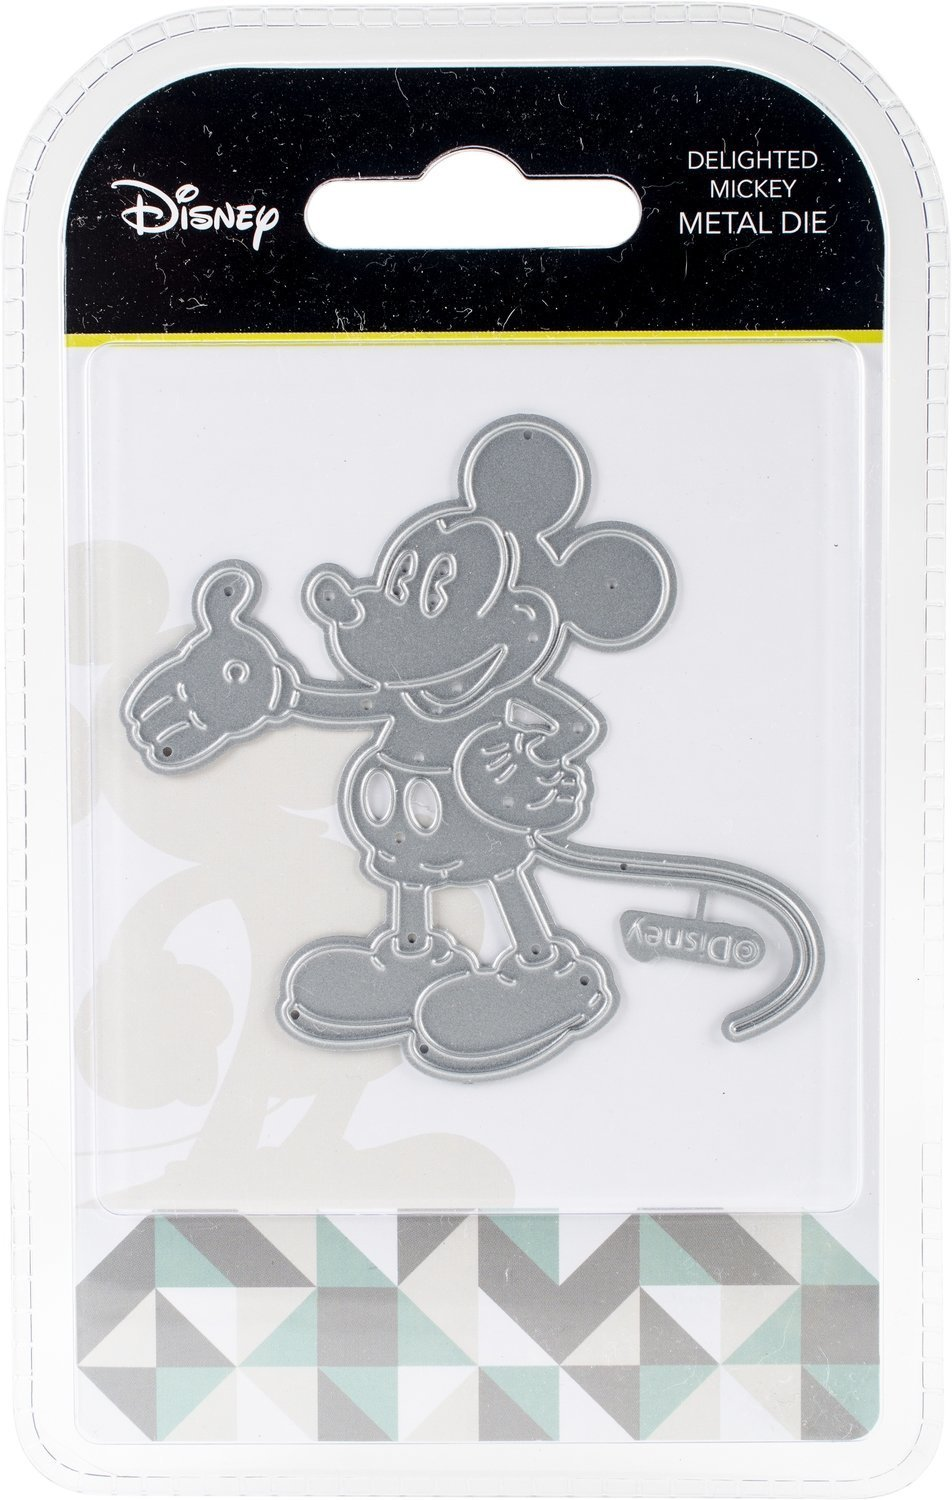 Disney DELIGHTED MICKEY Mickey & Minnie Mouse  Die Set